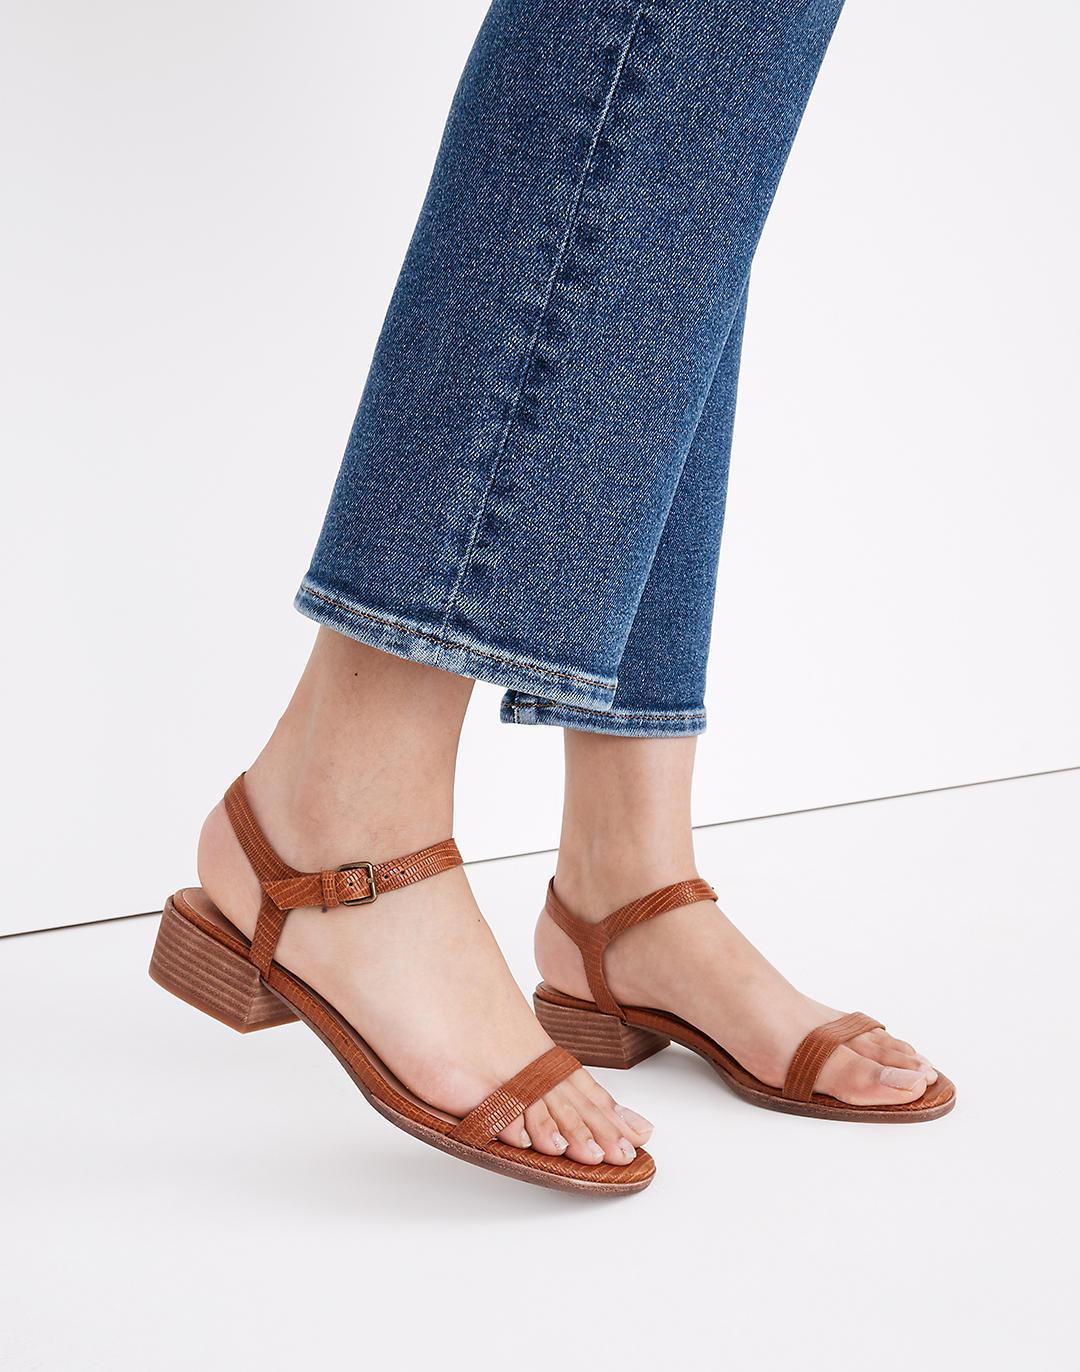 The Louise Sandal in Lizard Embossed Leather 3